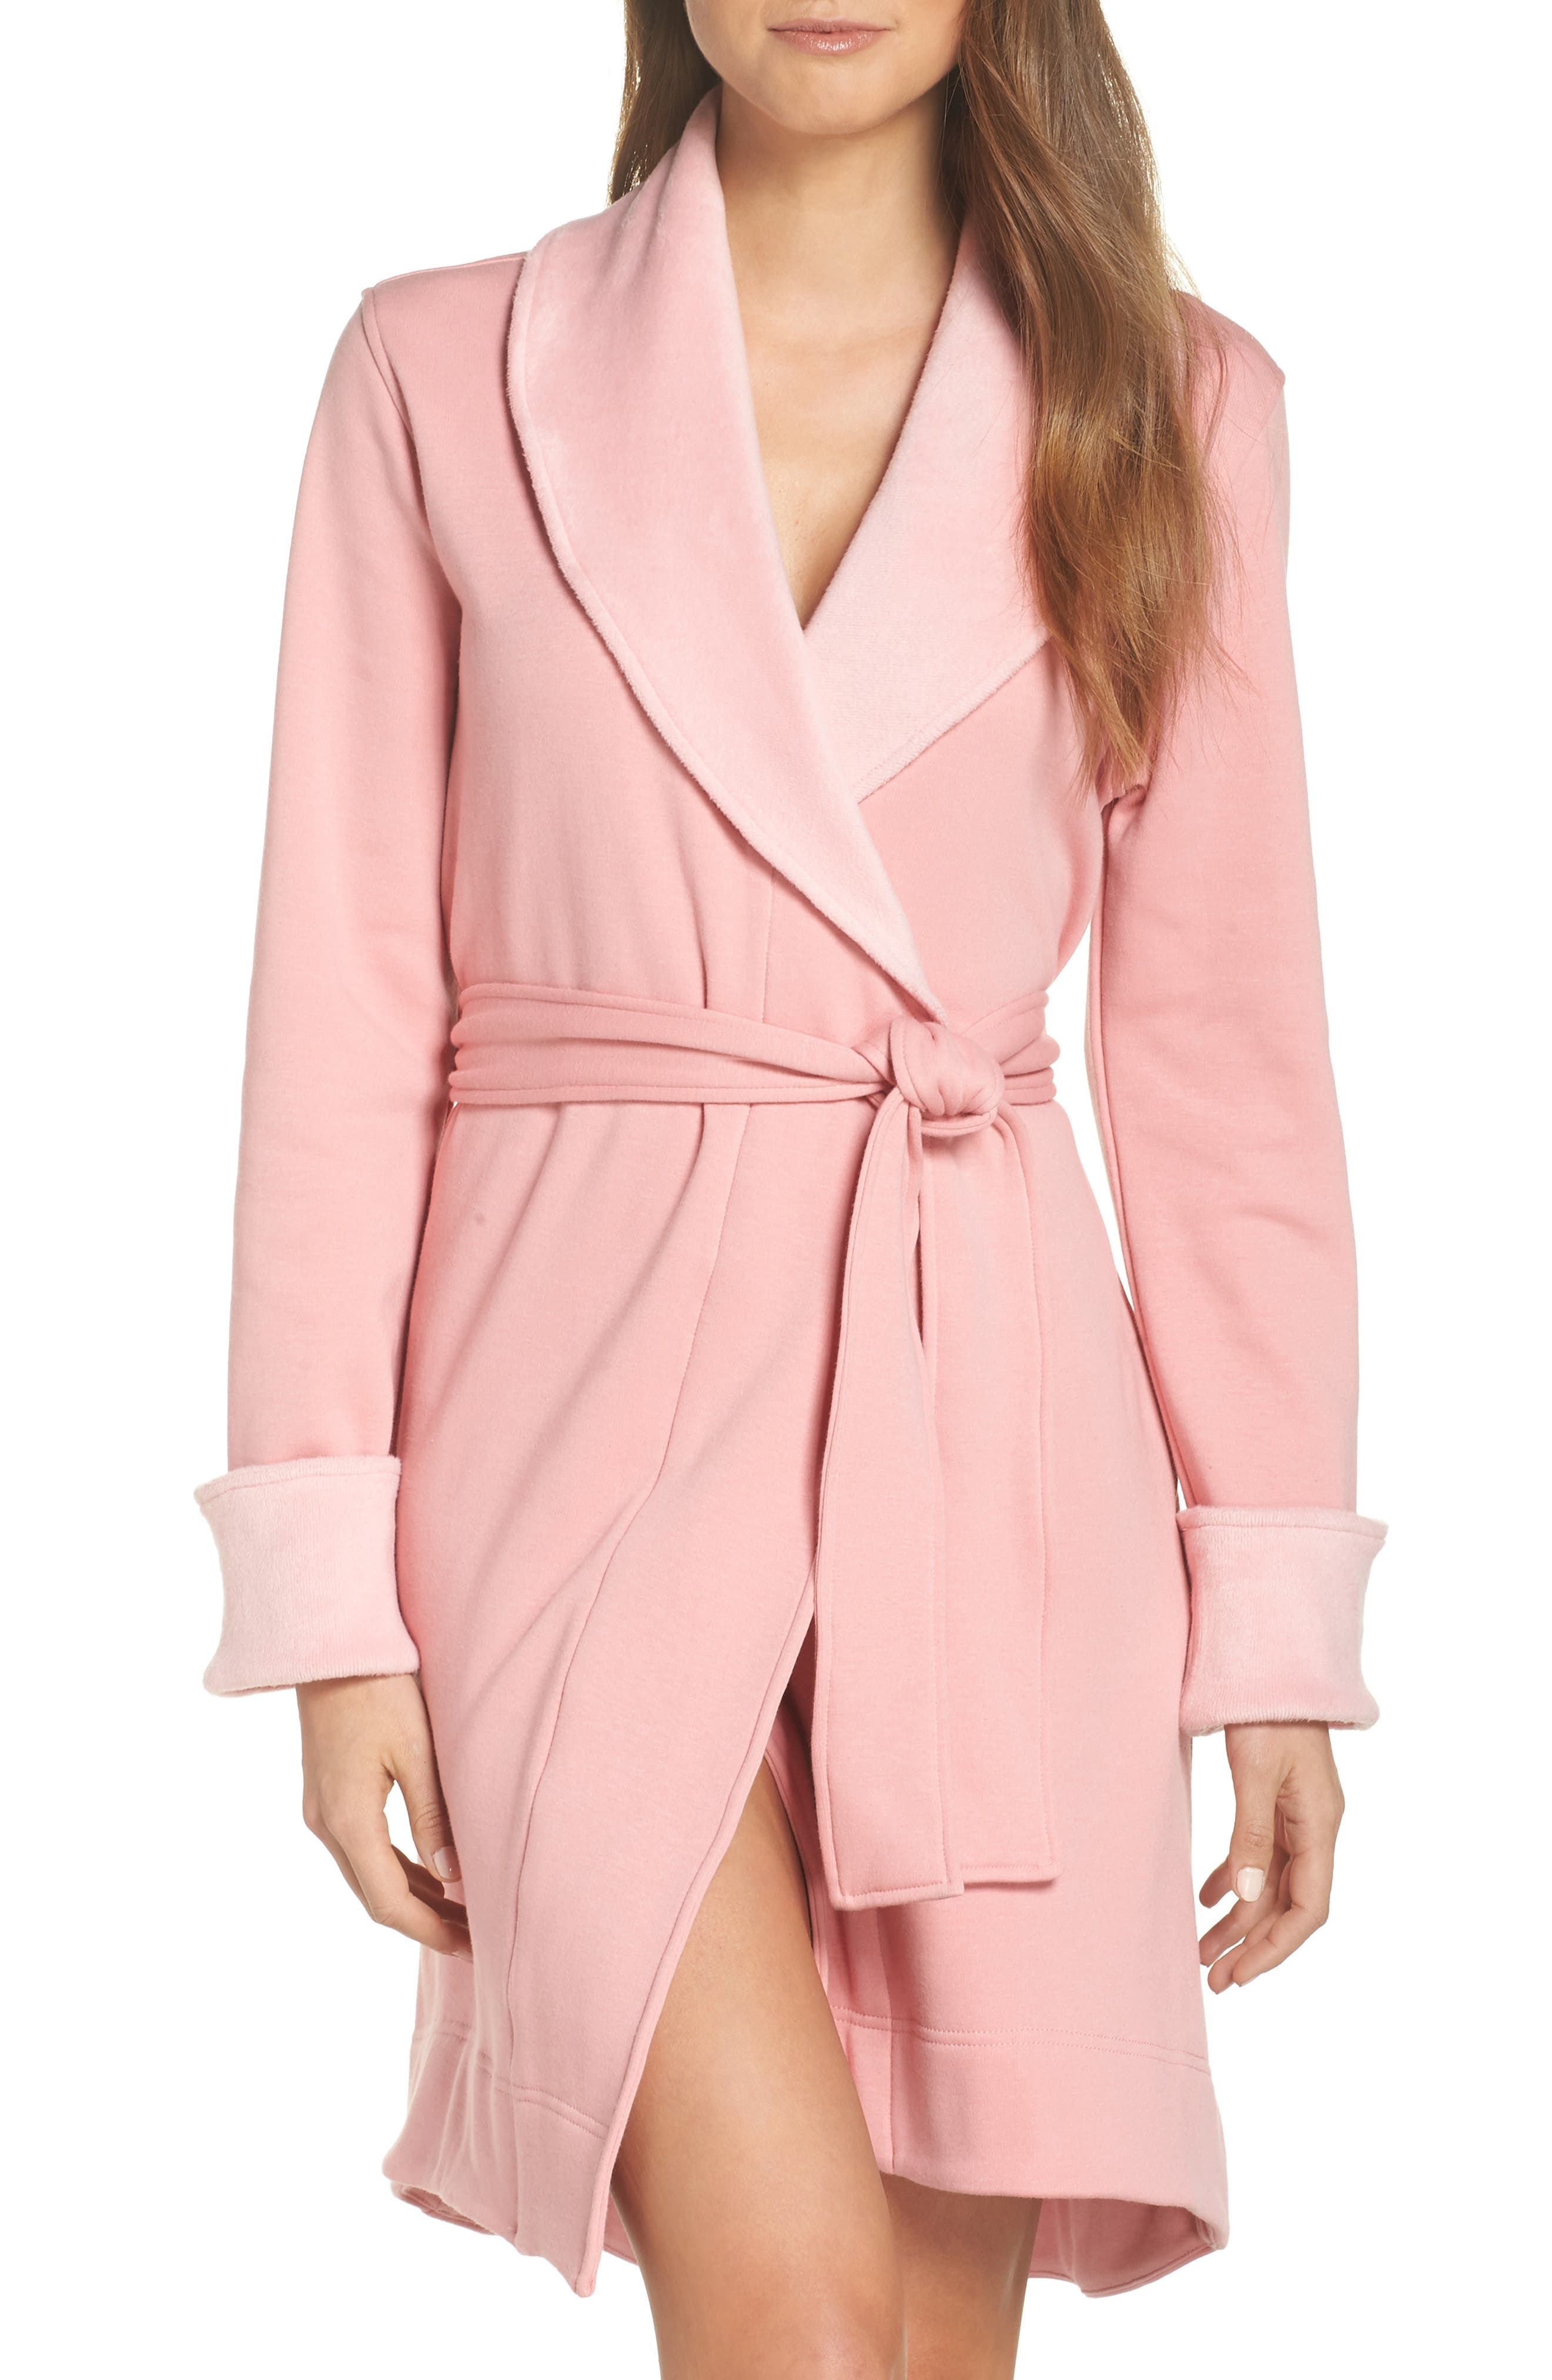 UGG<SUP>®</SUP> Blanche II Short Robe, Main, color, PINK DAWN